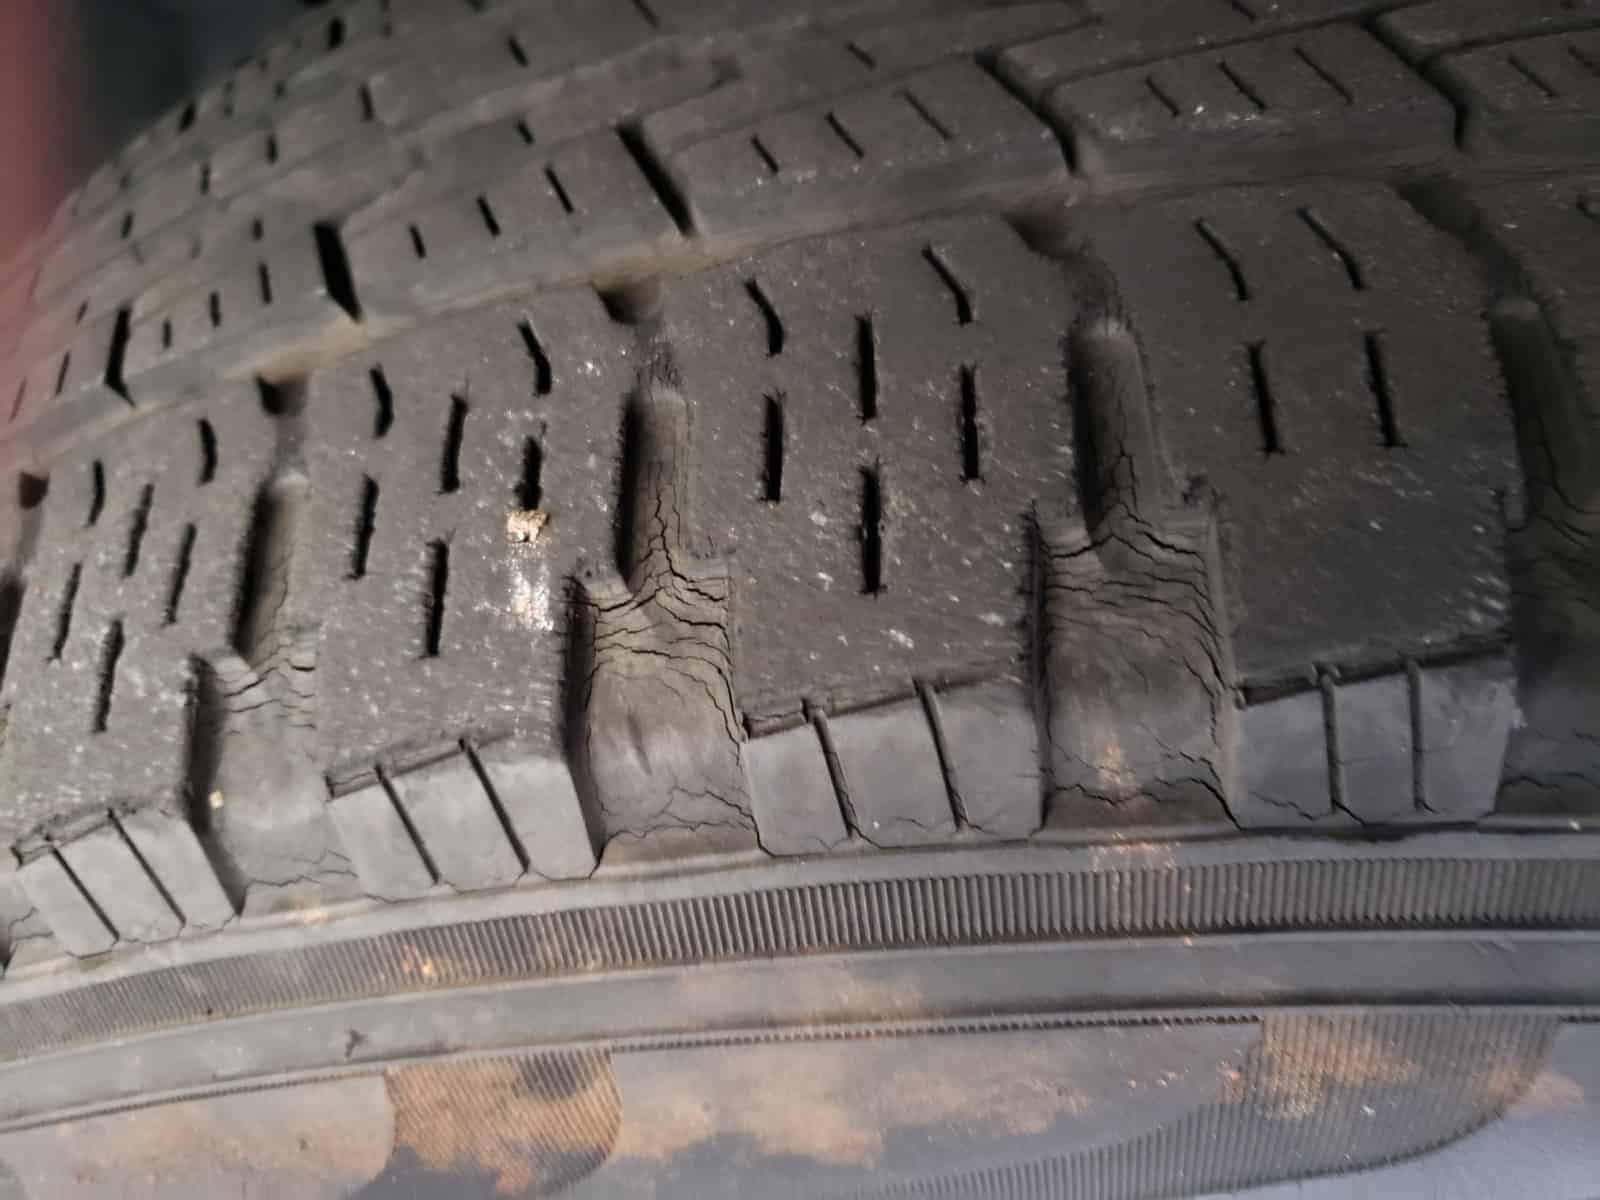 Age related Pirelli Tire Cracks